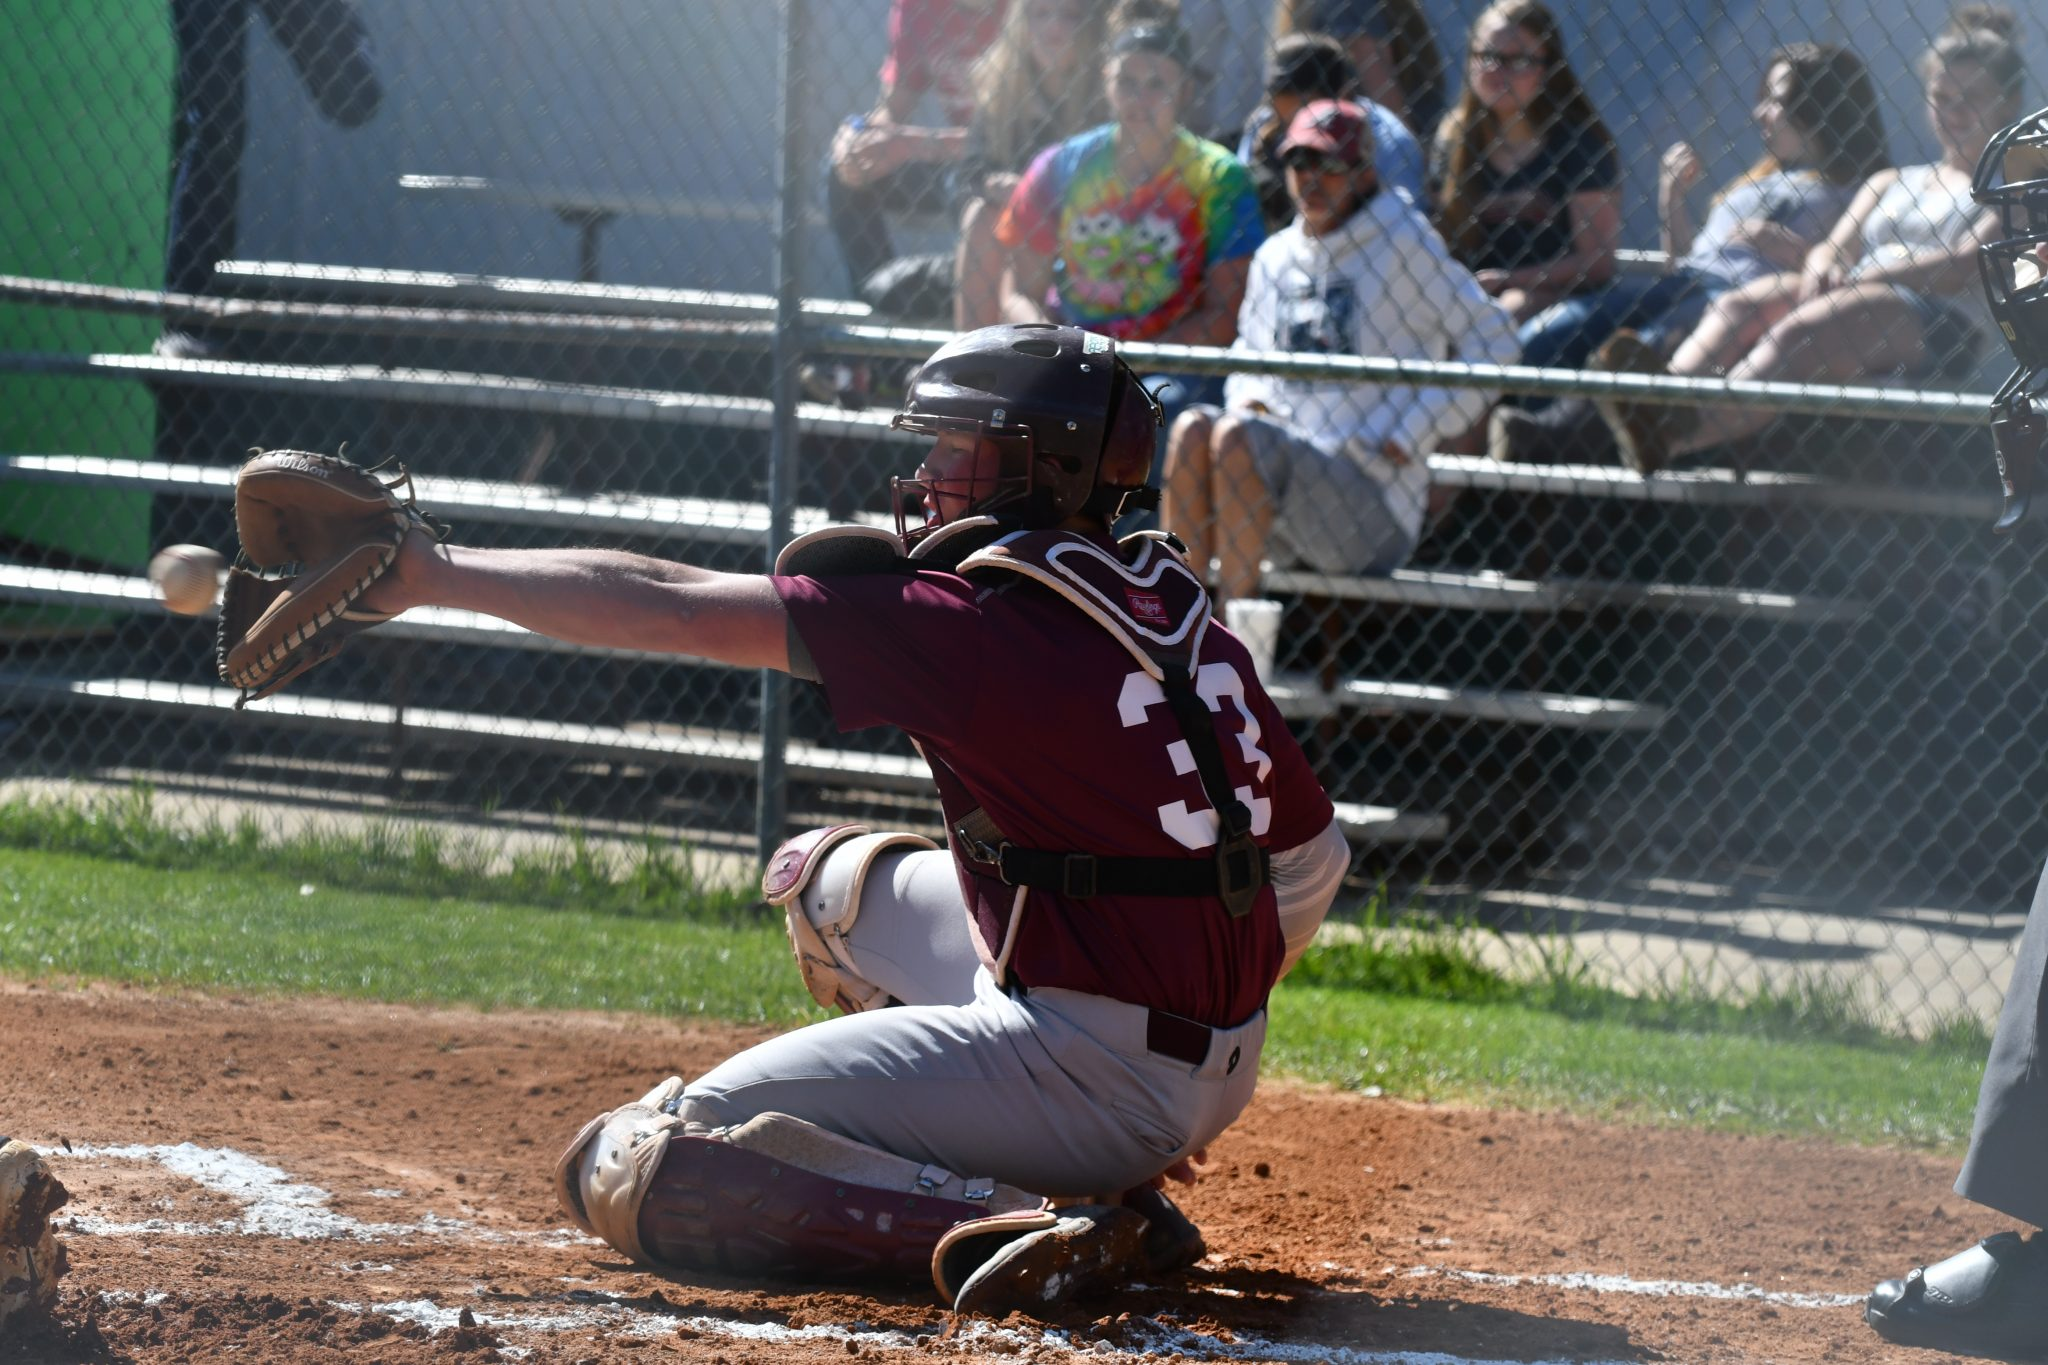 Maroon Devils Down Chatham Charter and Advance